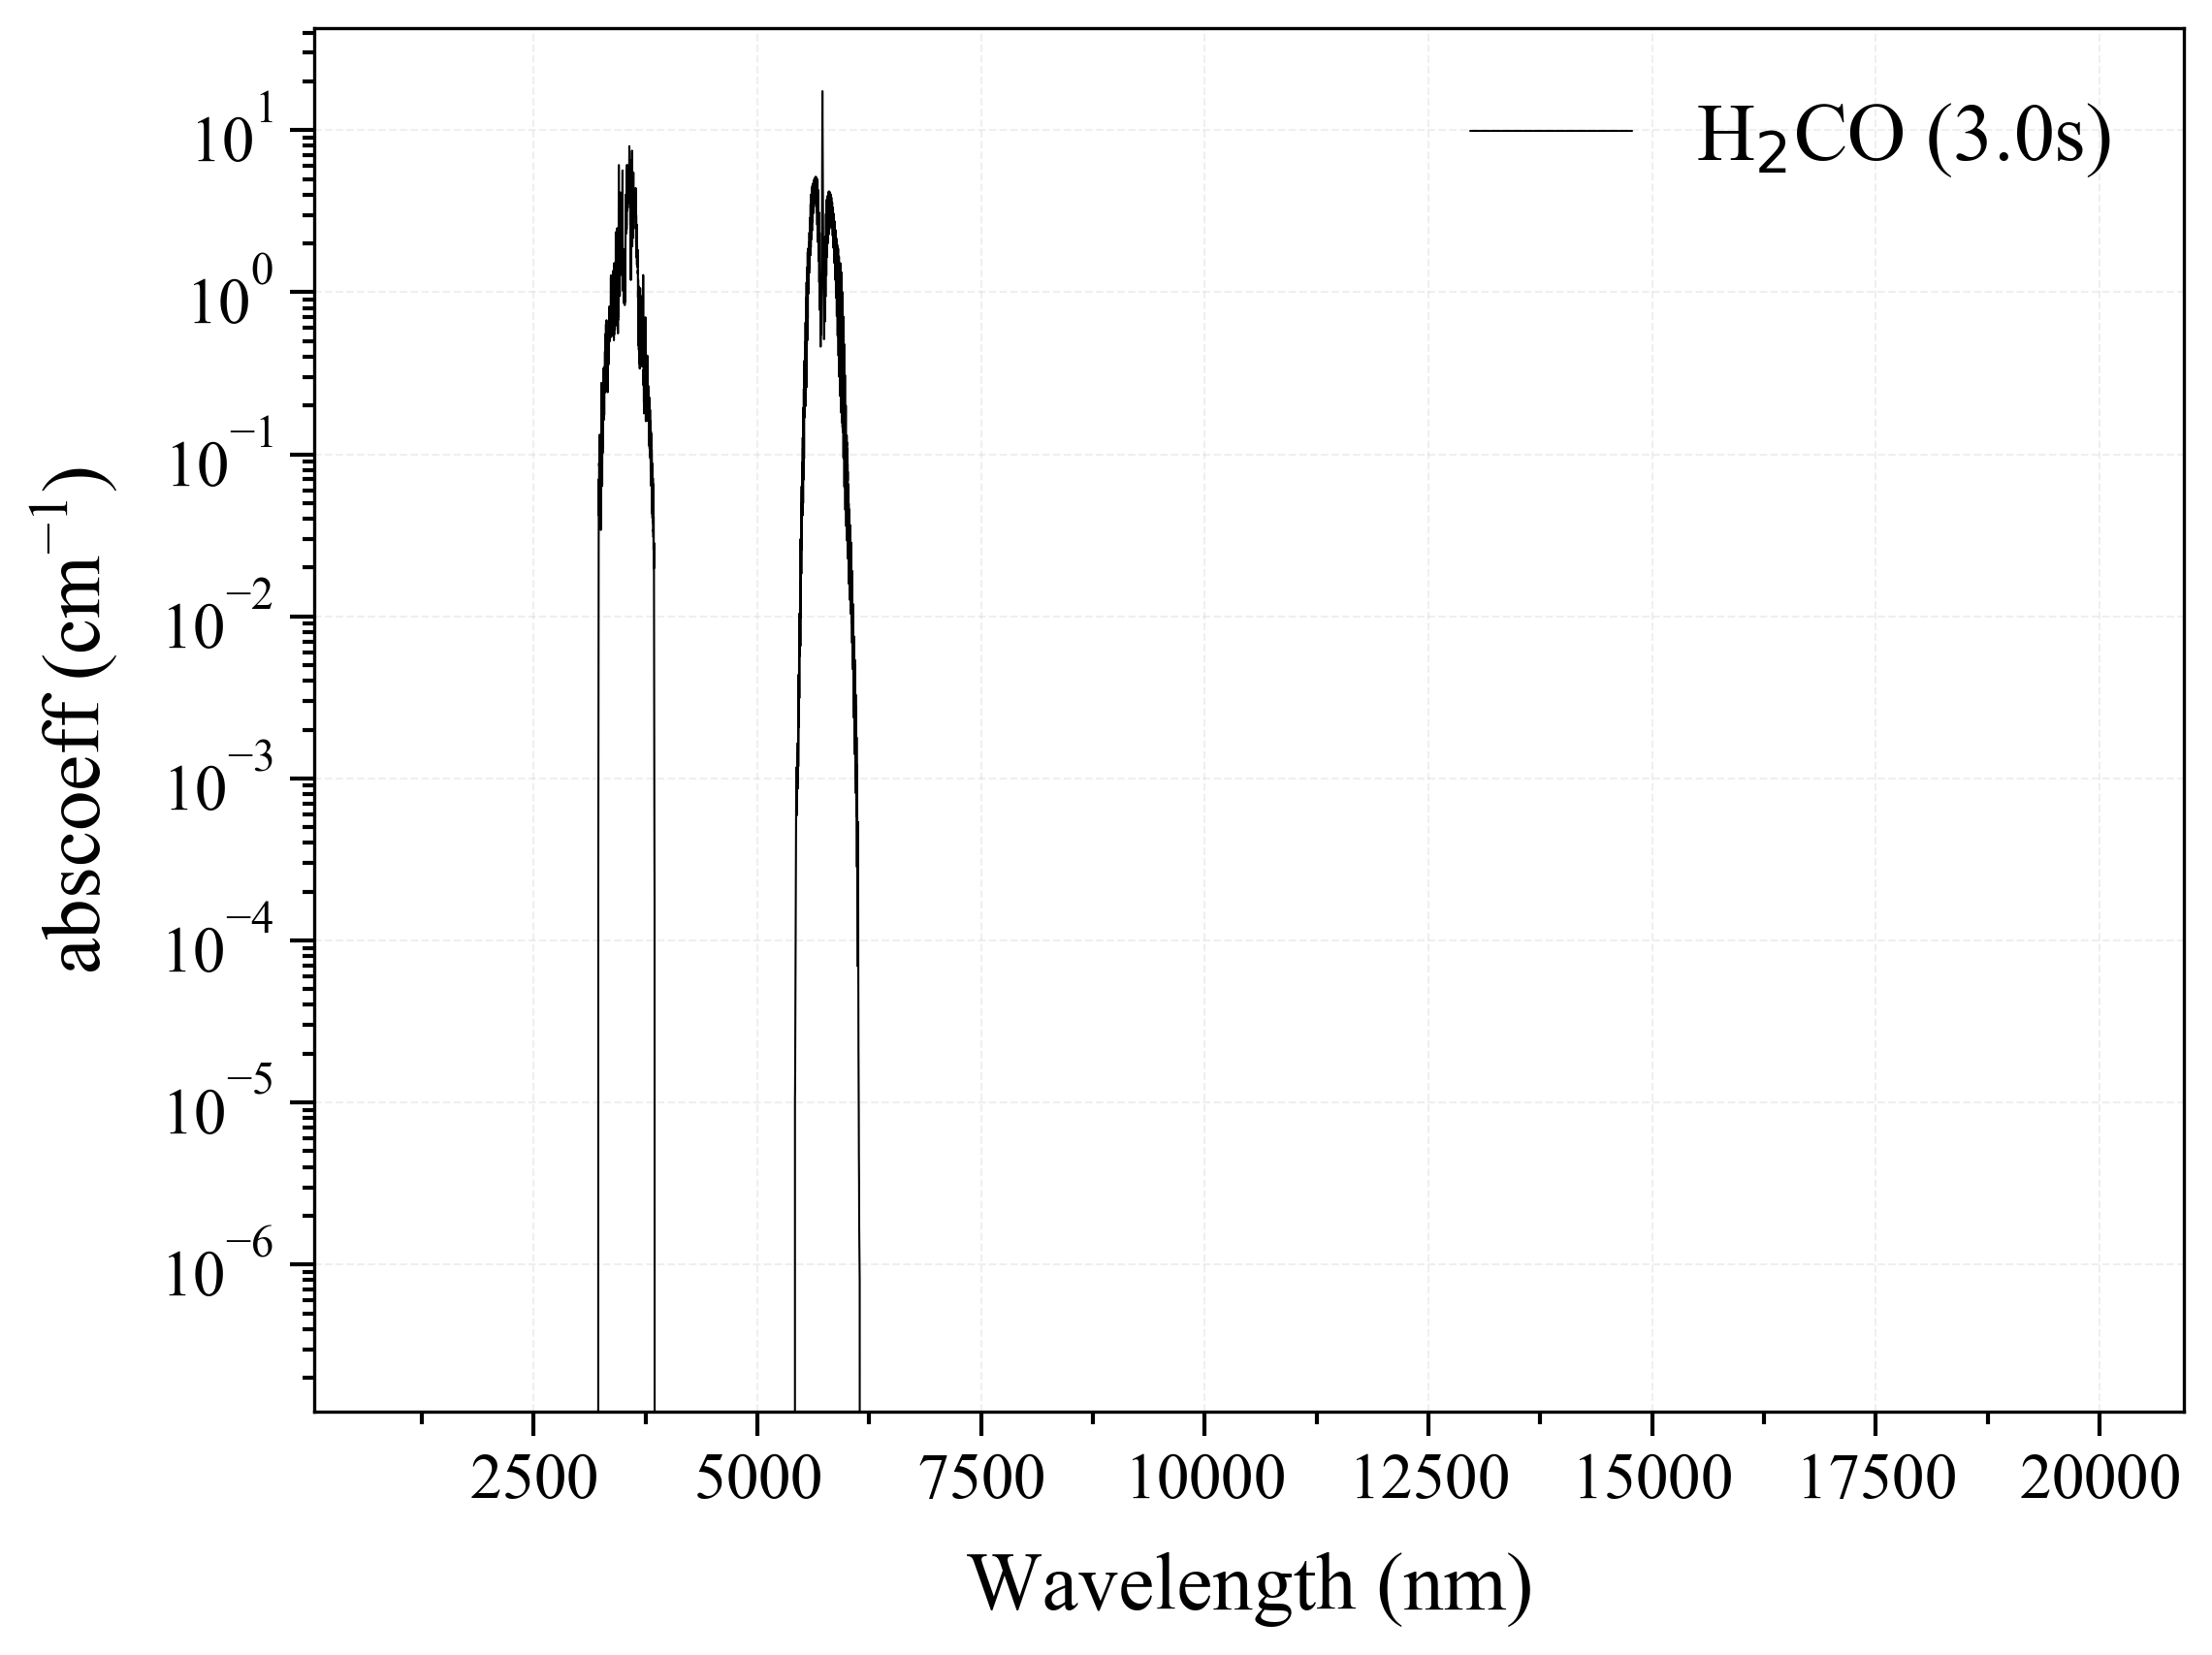 Formaldehyde H2CO infrared absorption coefficient